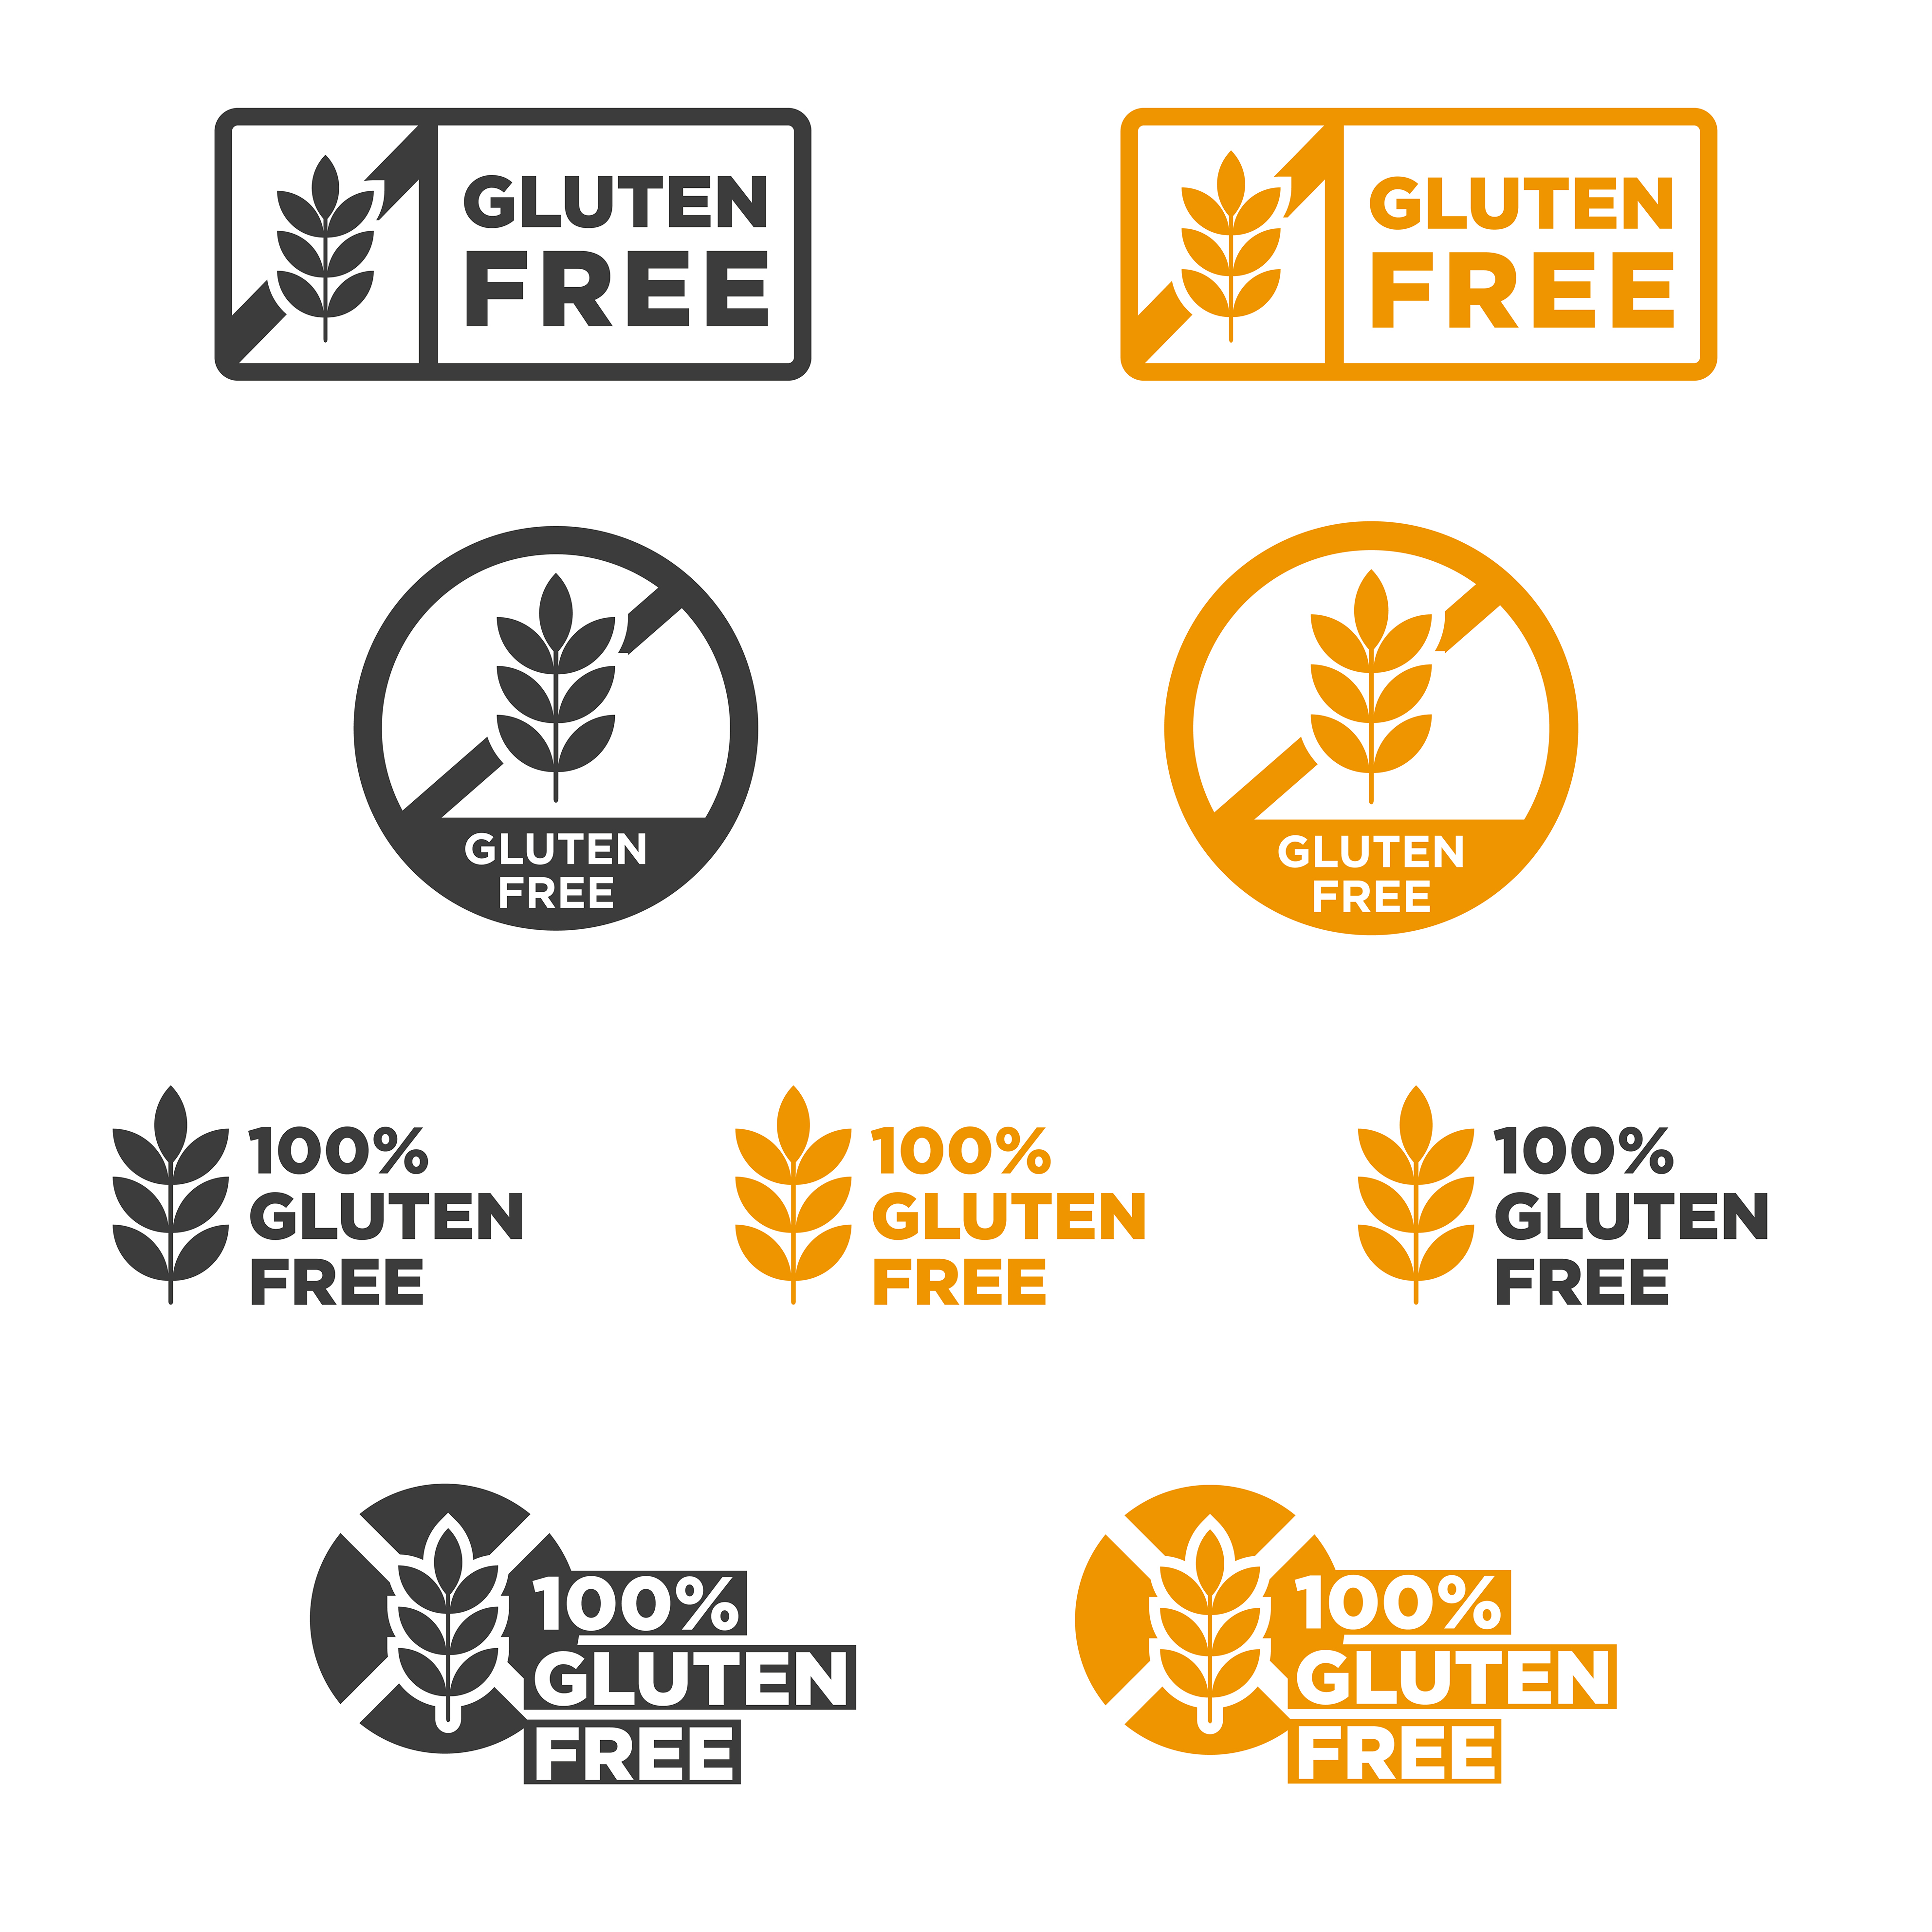 Gluten free icons set  - Download Free Vector Art, Stock Graphics